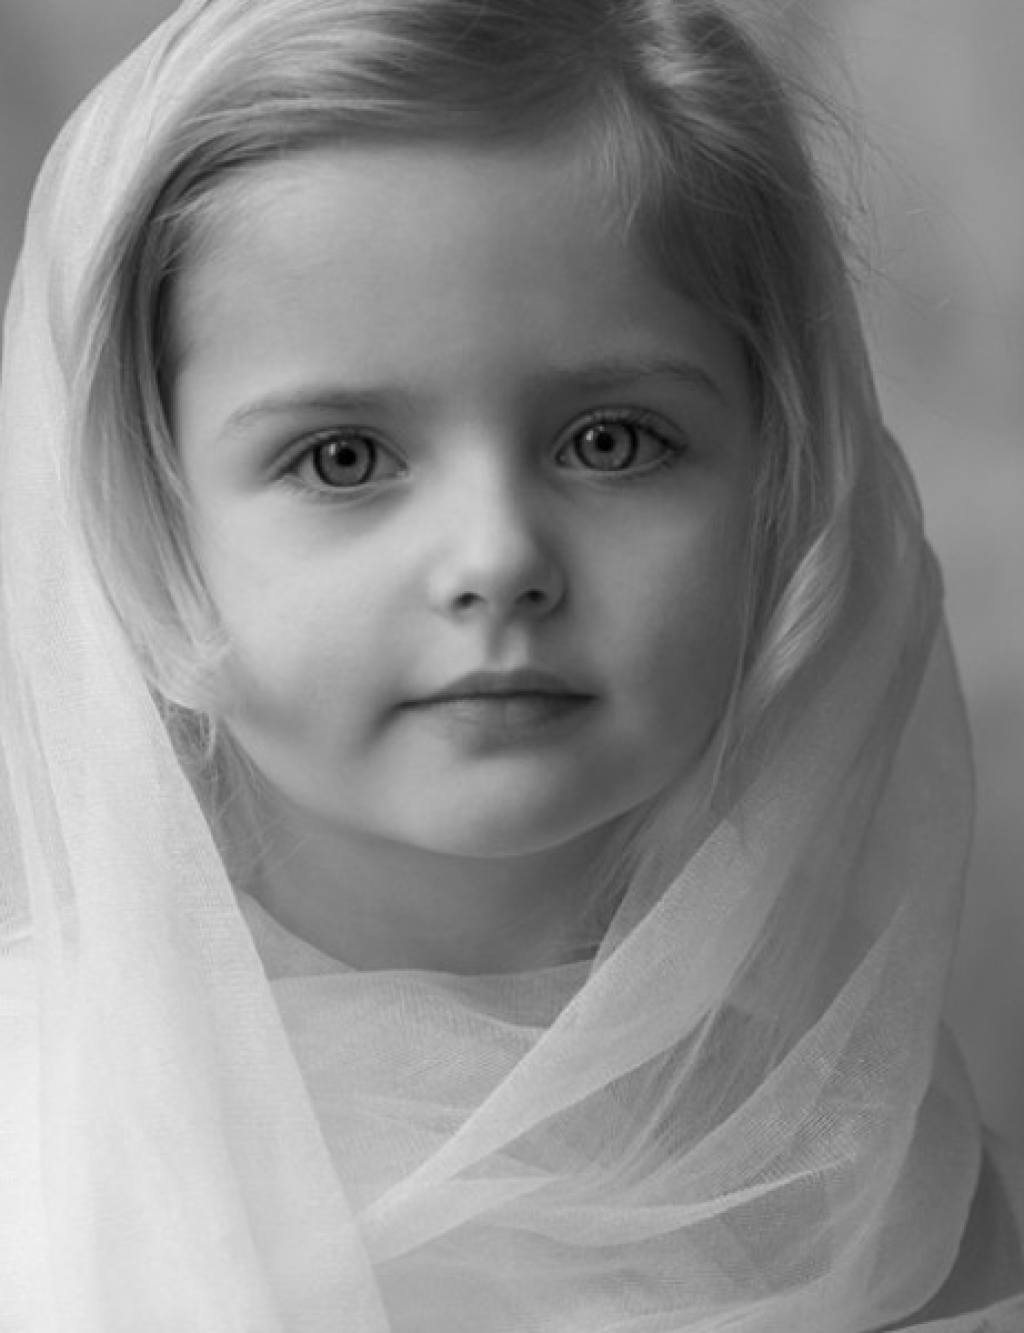 Cute Girl Baby Photos With Messages Cute Baby Girls Widescreen